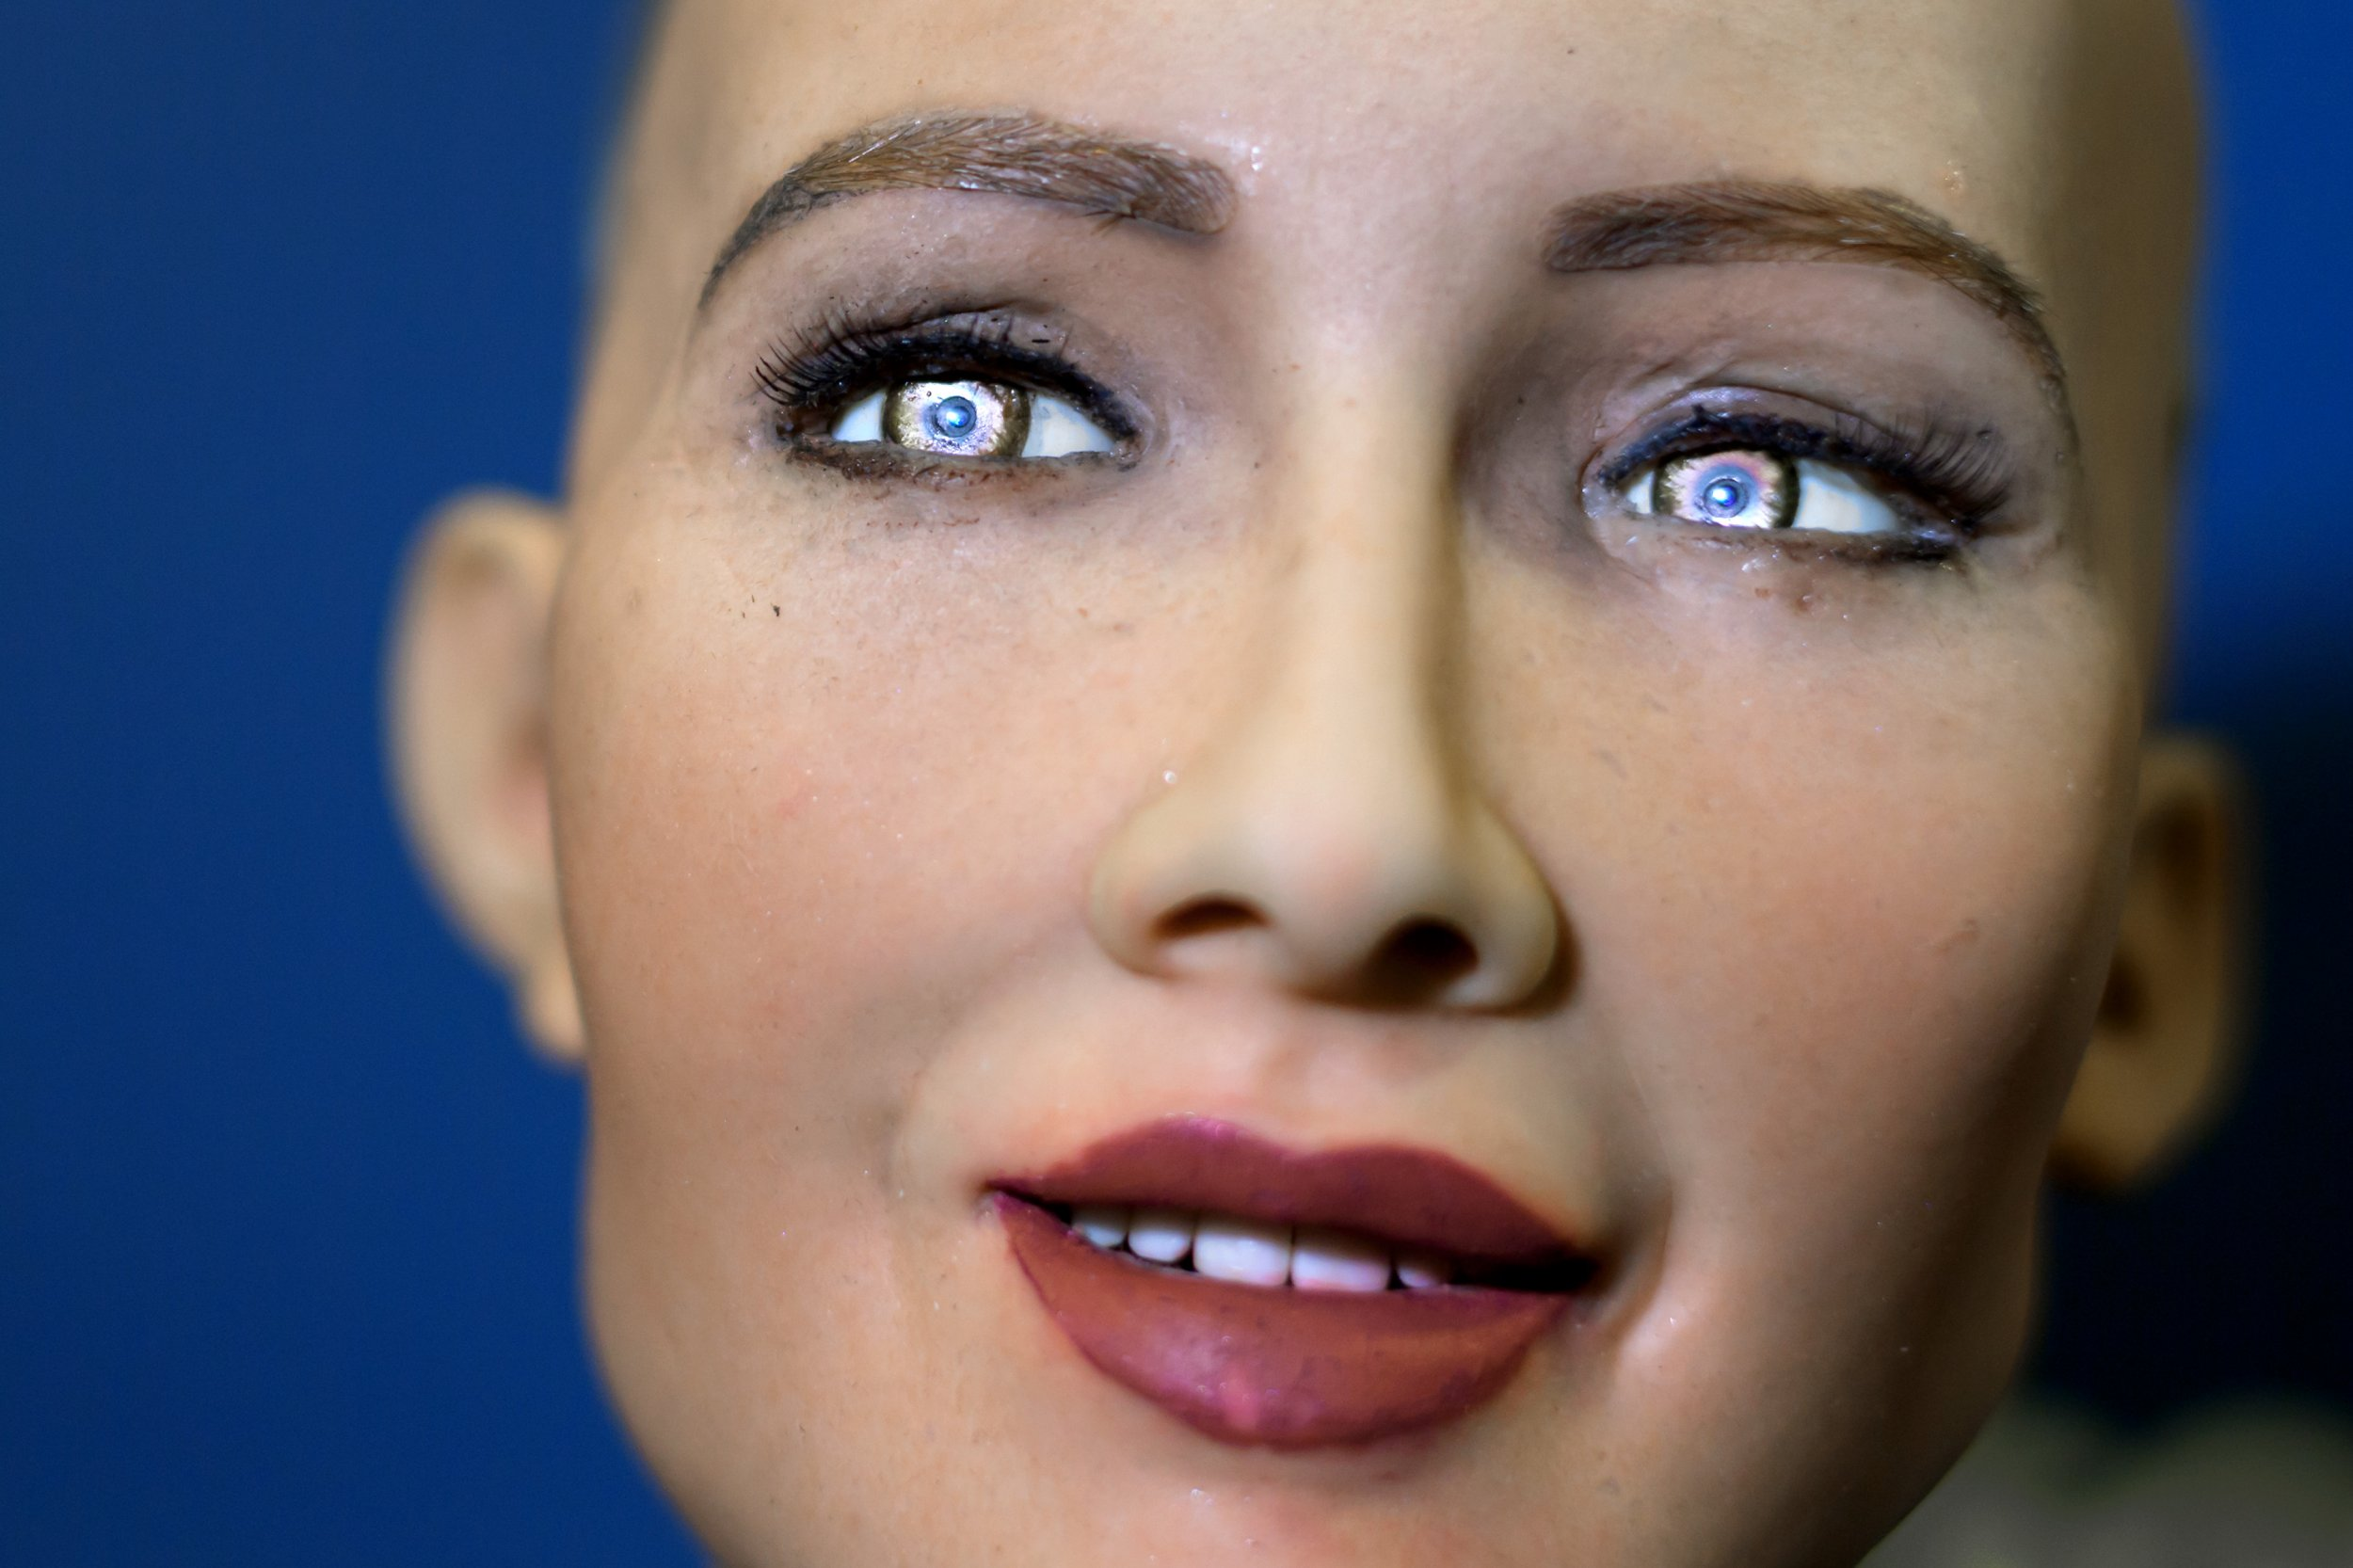 A Robot Mocked Elon Musk and His Grim A.I. Predictions. He Didn't Take It Well